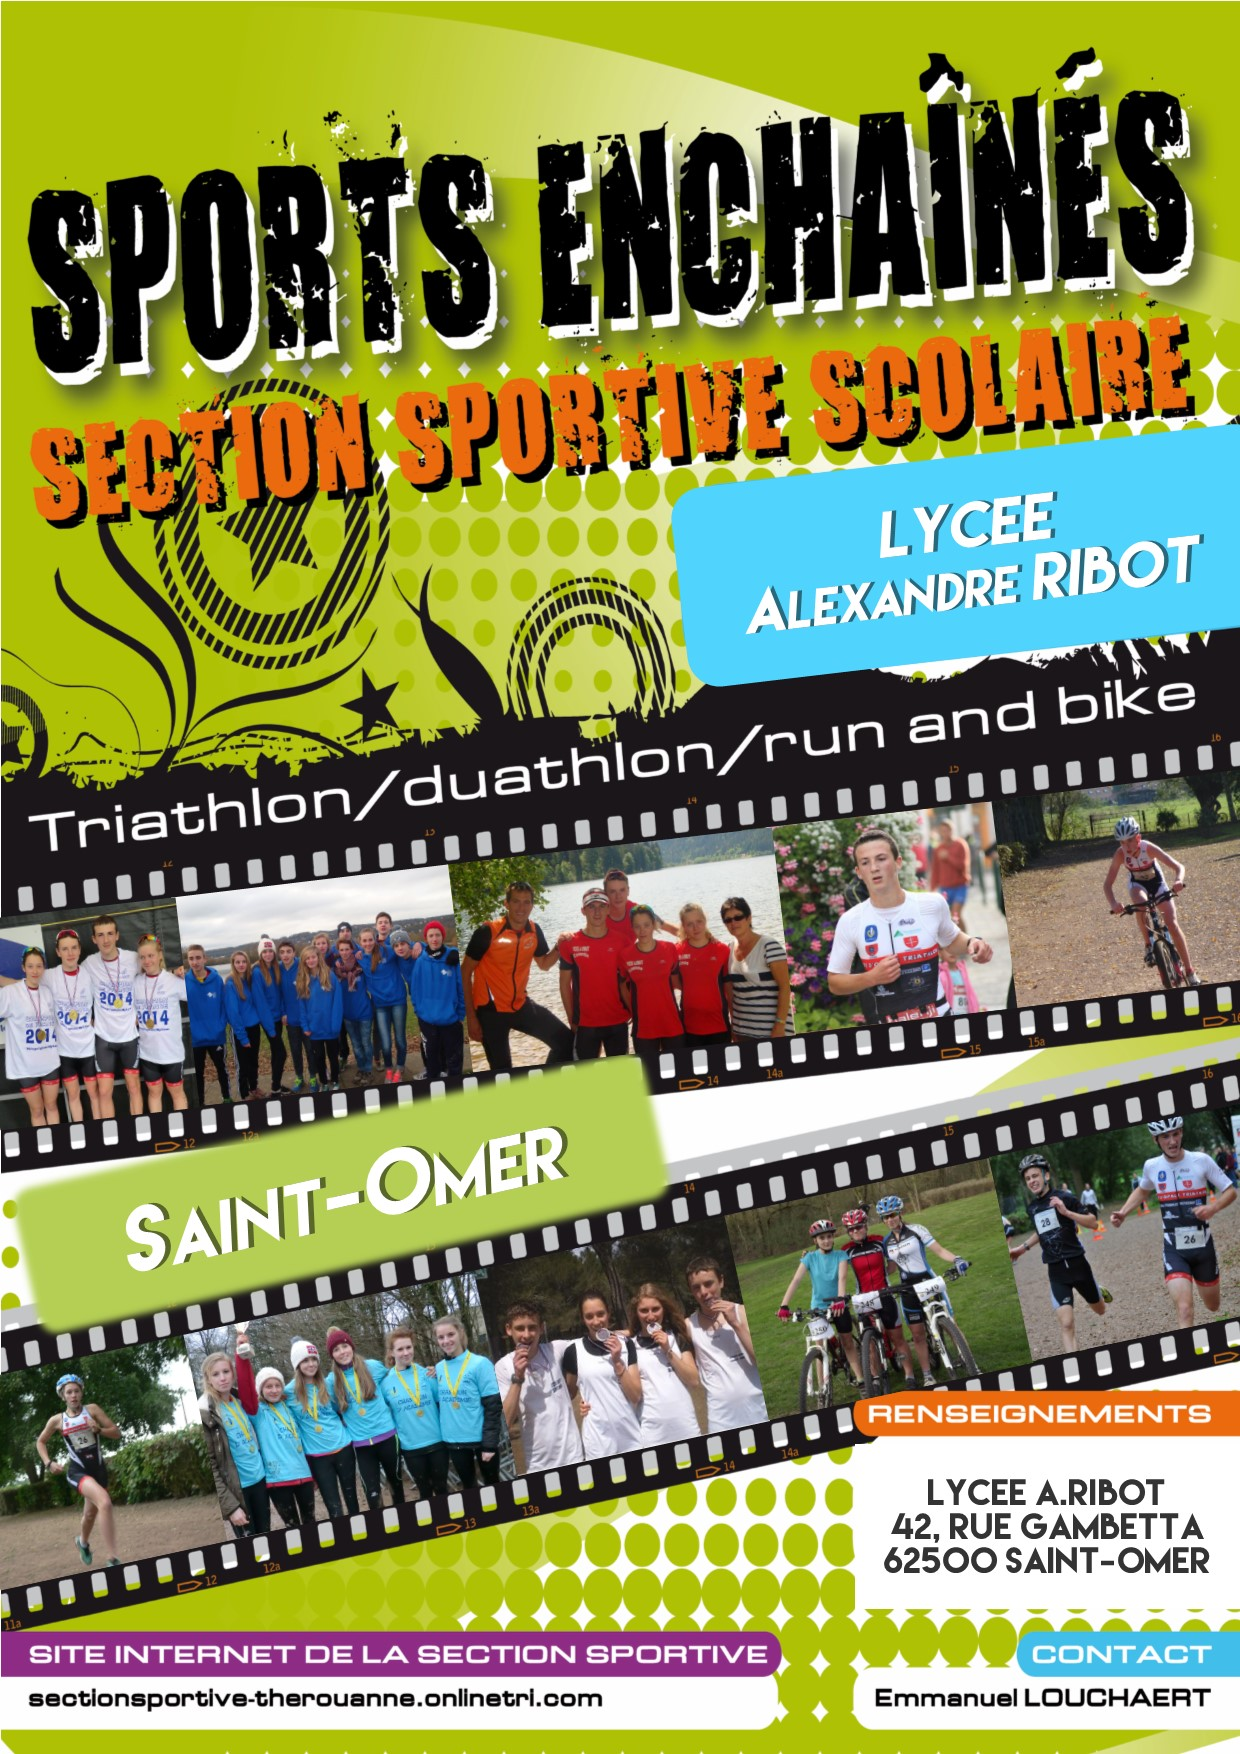 Section sports enchaines